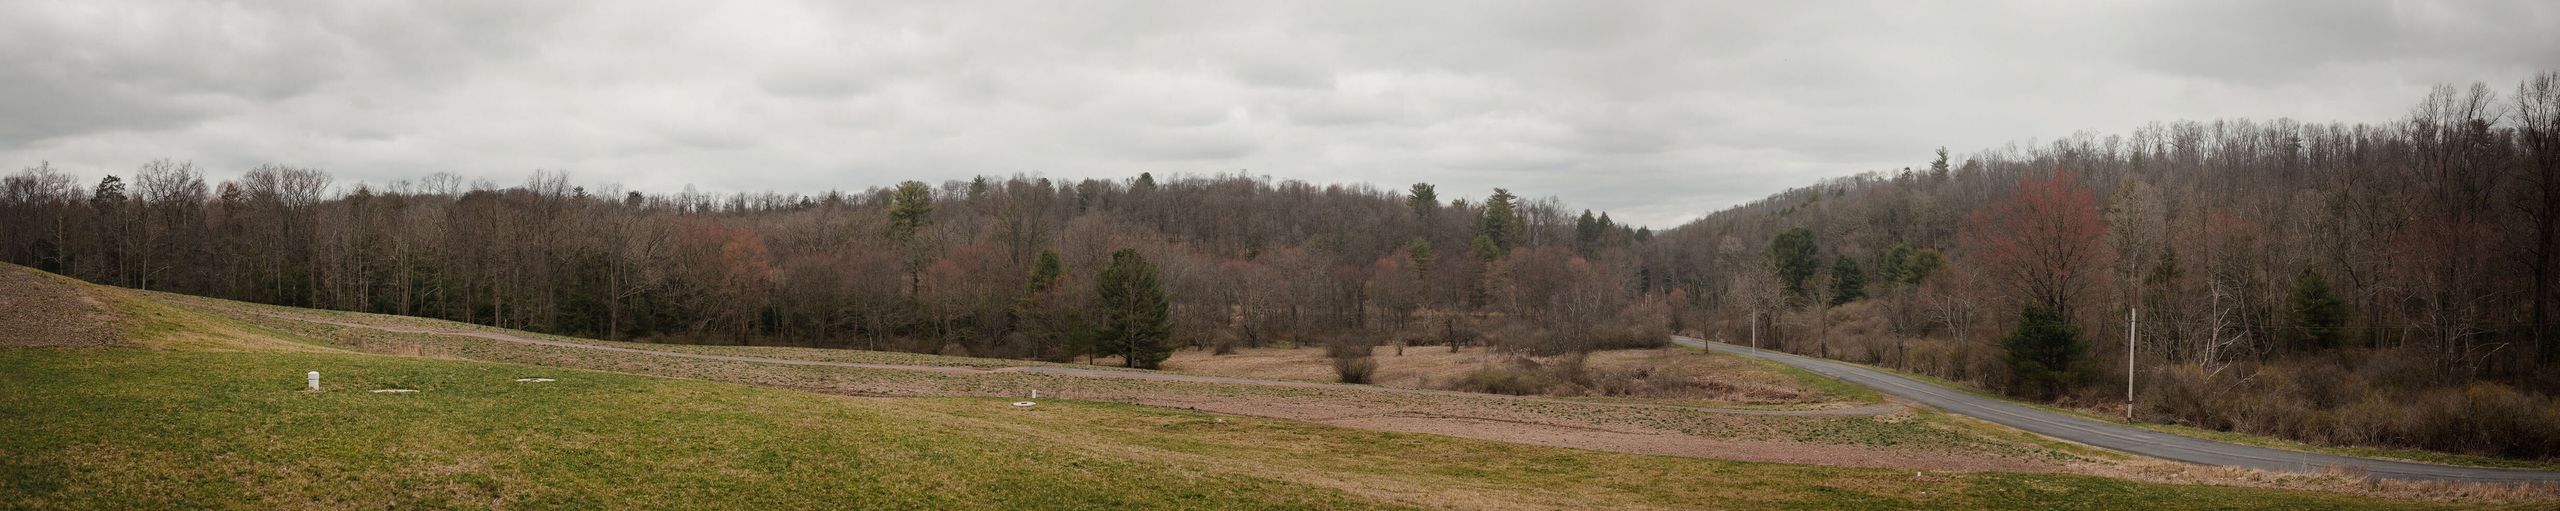 A stitched panoramic image of Wayne Brensinger's farm in Auburn, Pennsylvania.